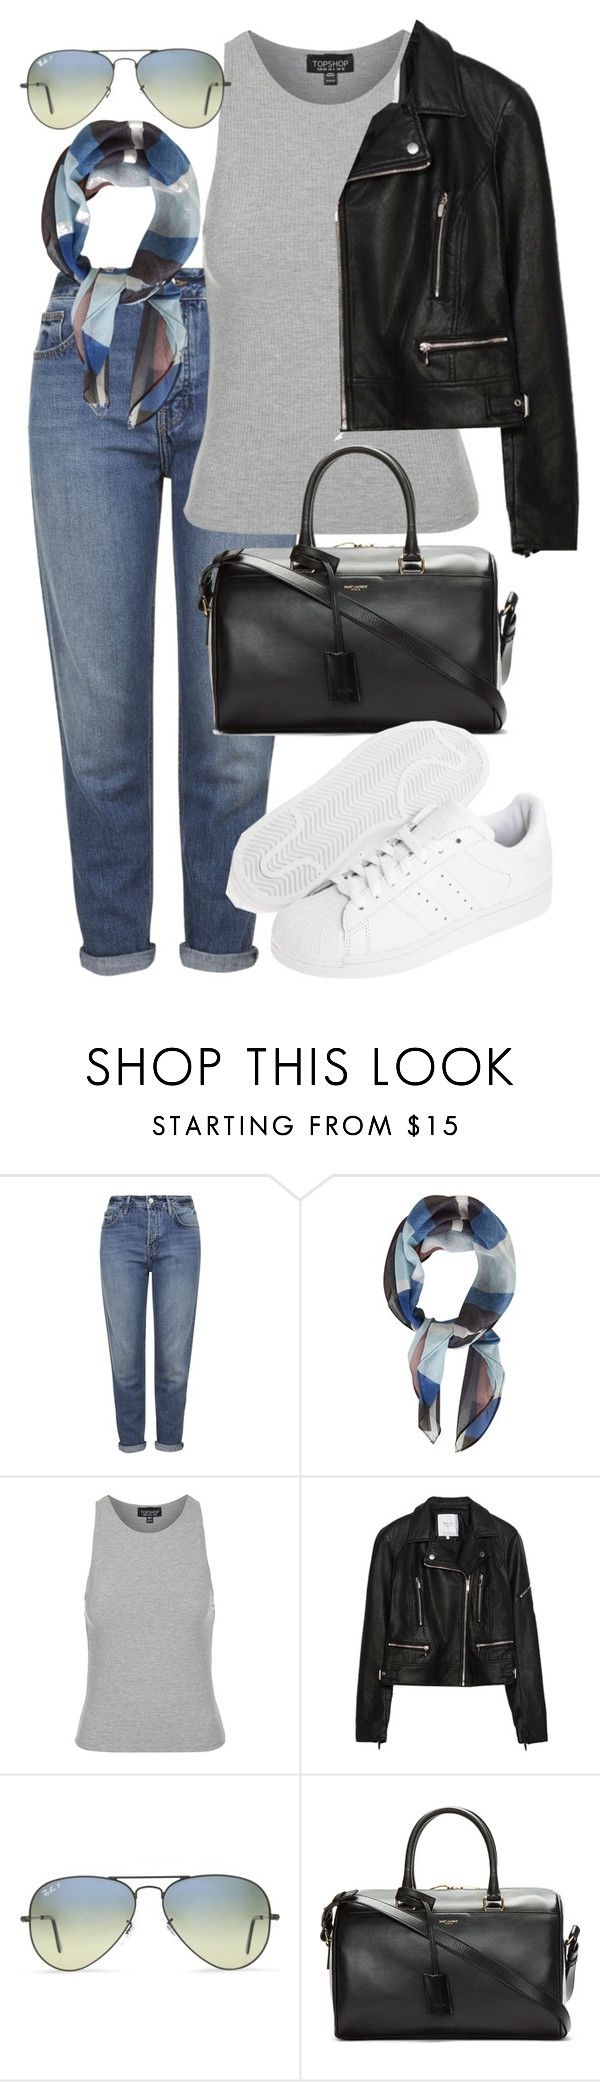 """""""Untitled #2388"""" by oliviaswardrobe ❤ liked on Polyvore featuring Topshop, Zara, Ray-Ban, Yves Saint Laurent, adidas Originals, women's clothing, women, female, woman and misses"""